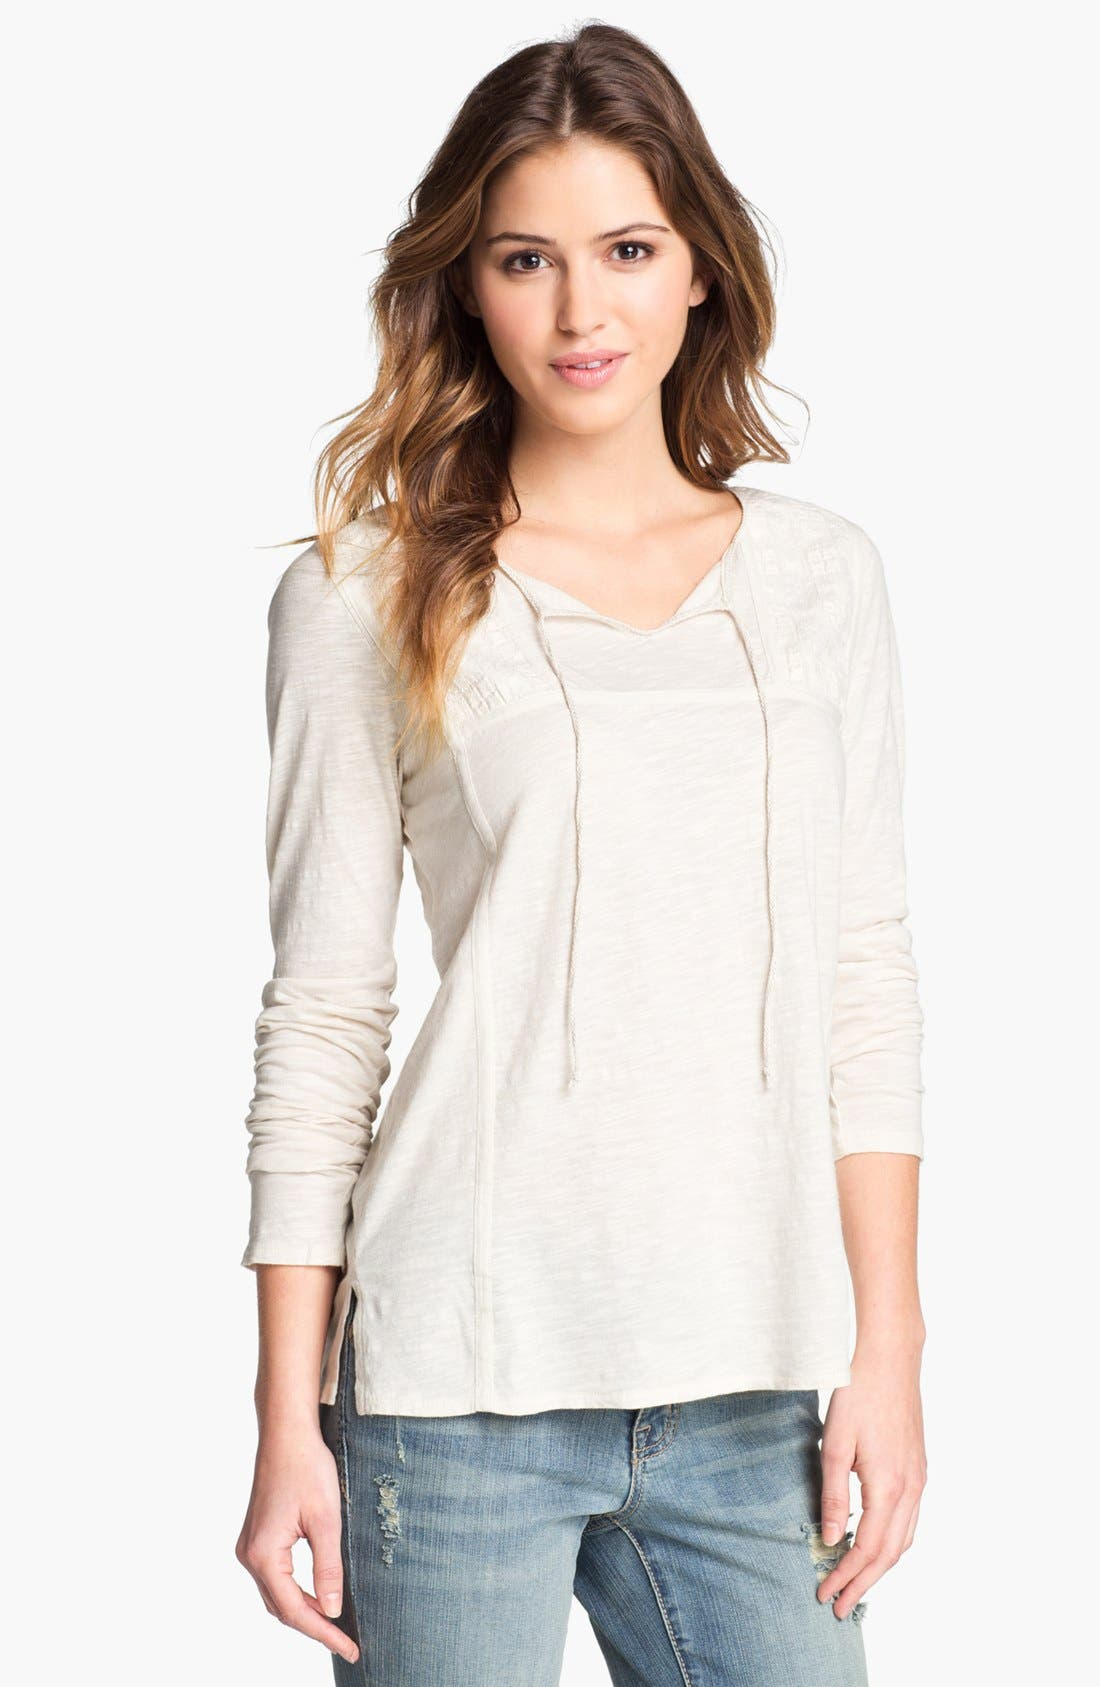 Alternate Image 1 Selected - Lucky Brand 'Dora' Top